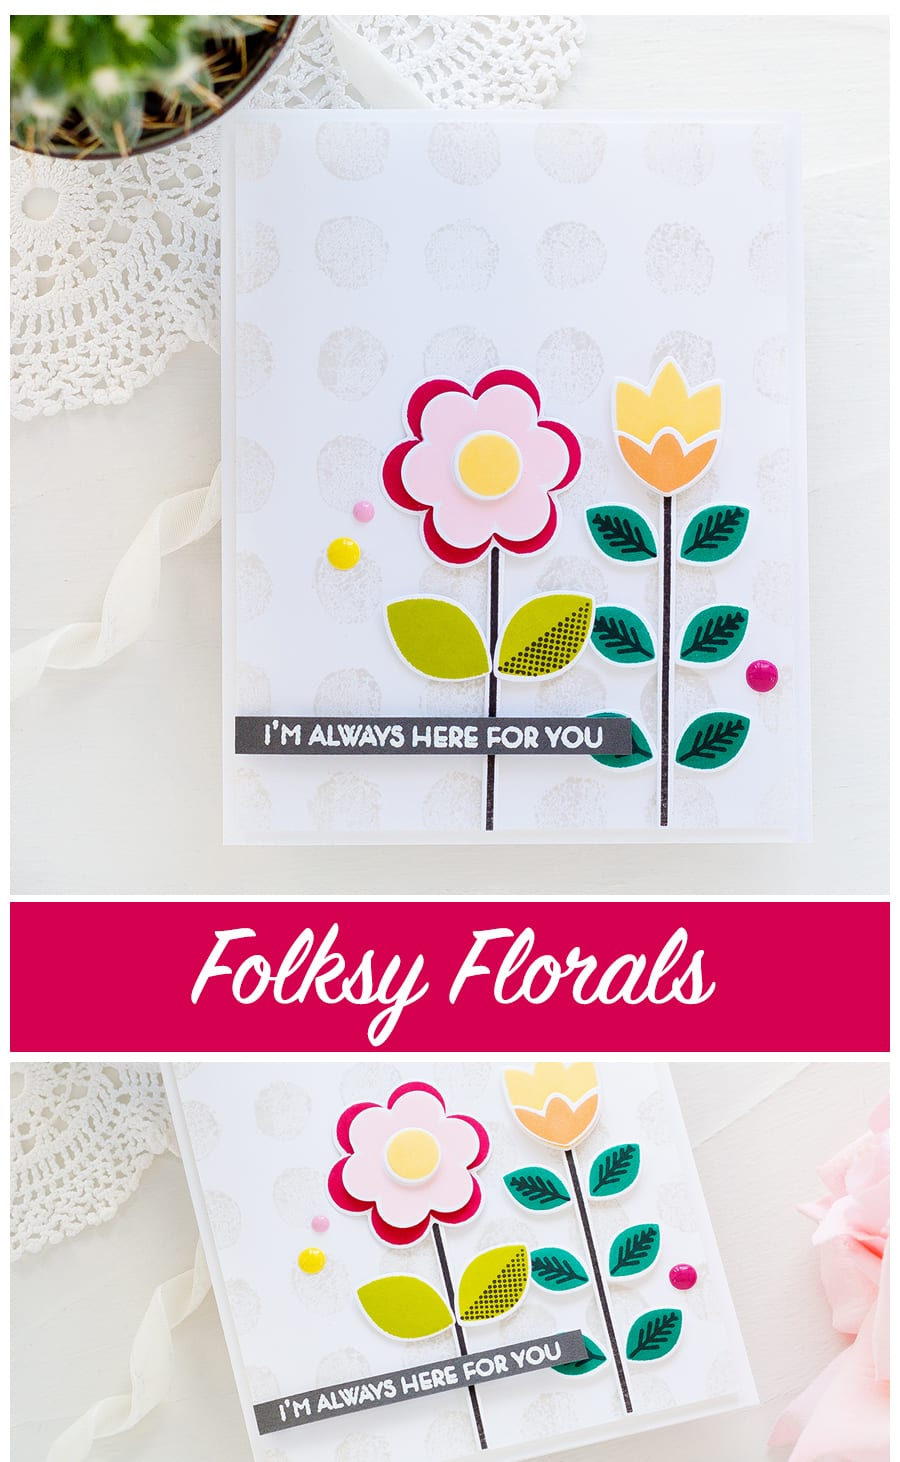 Folksy floral handmade card by Debby Hughes using new Altenew stamps and dies. Find out more: https://limedoodledesign.com/2018/04/altenew-april-2018-stamp-die-release-blog-hop-giveaway/